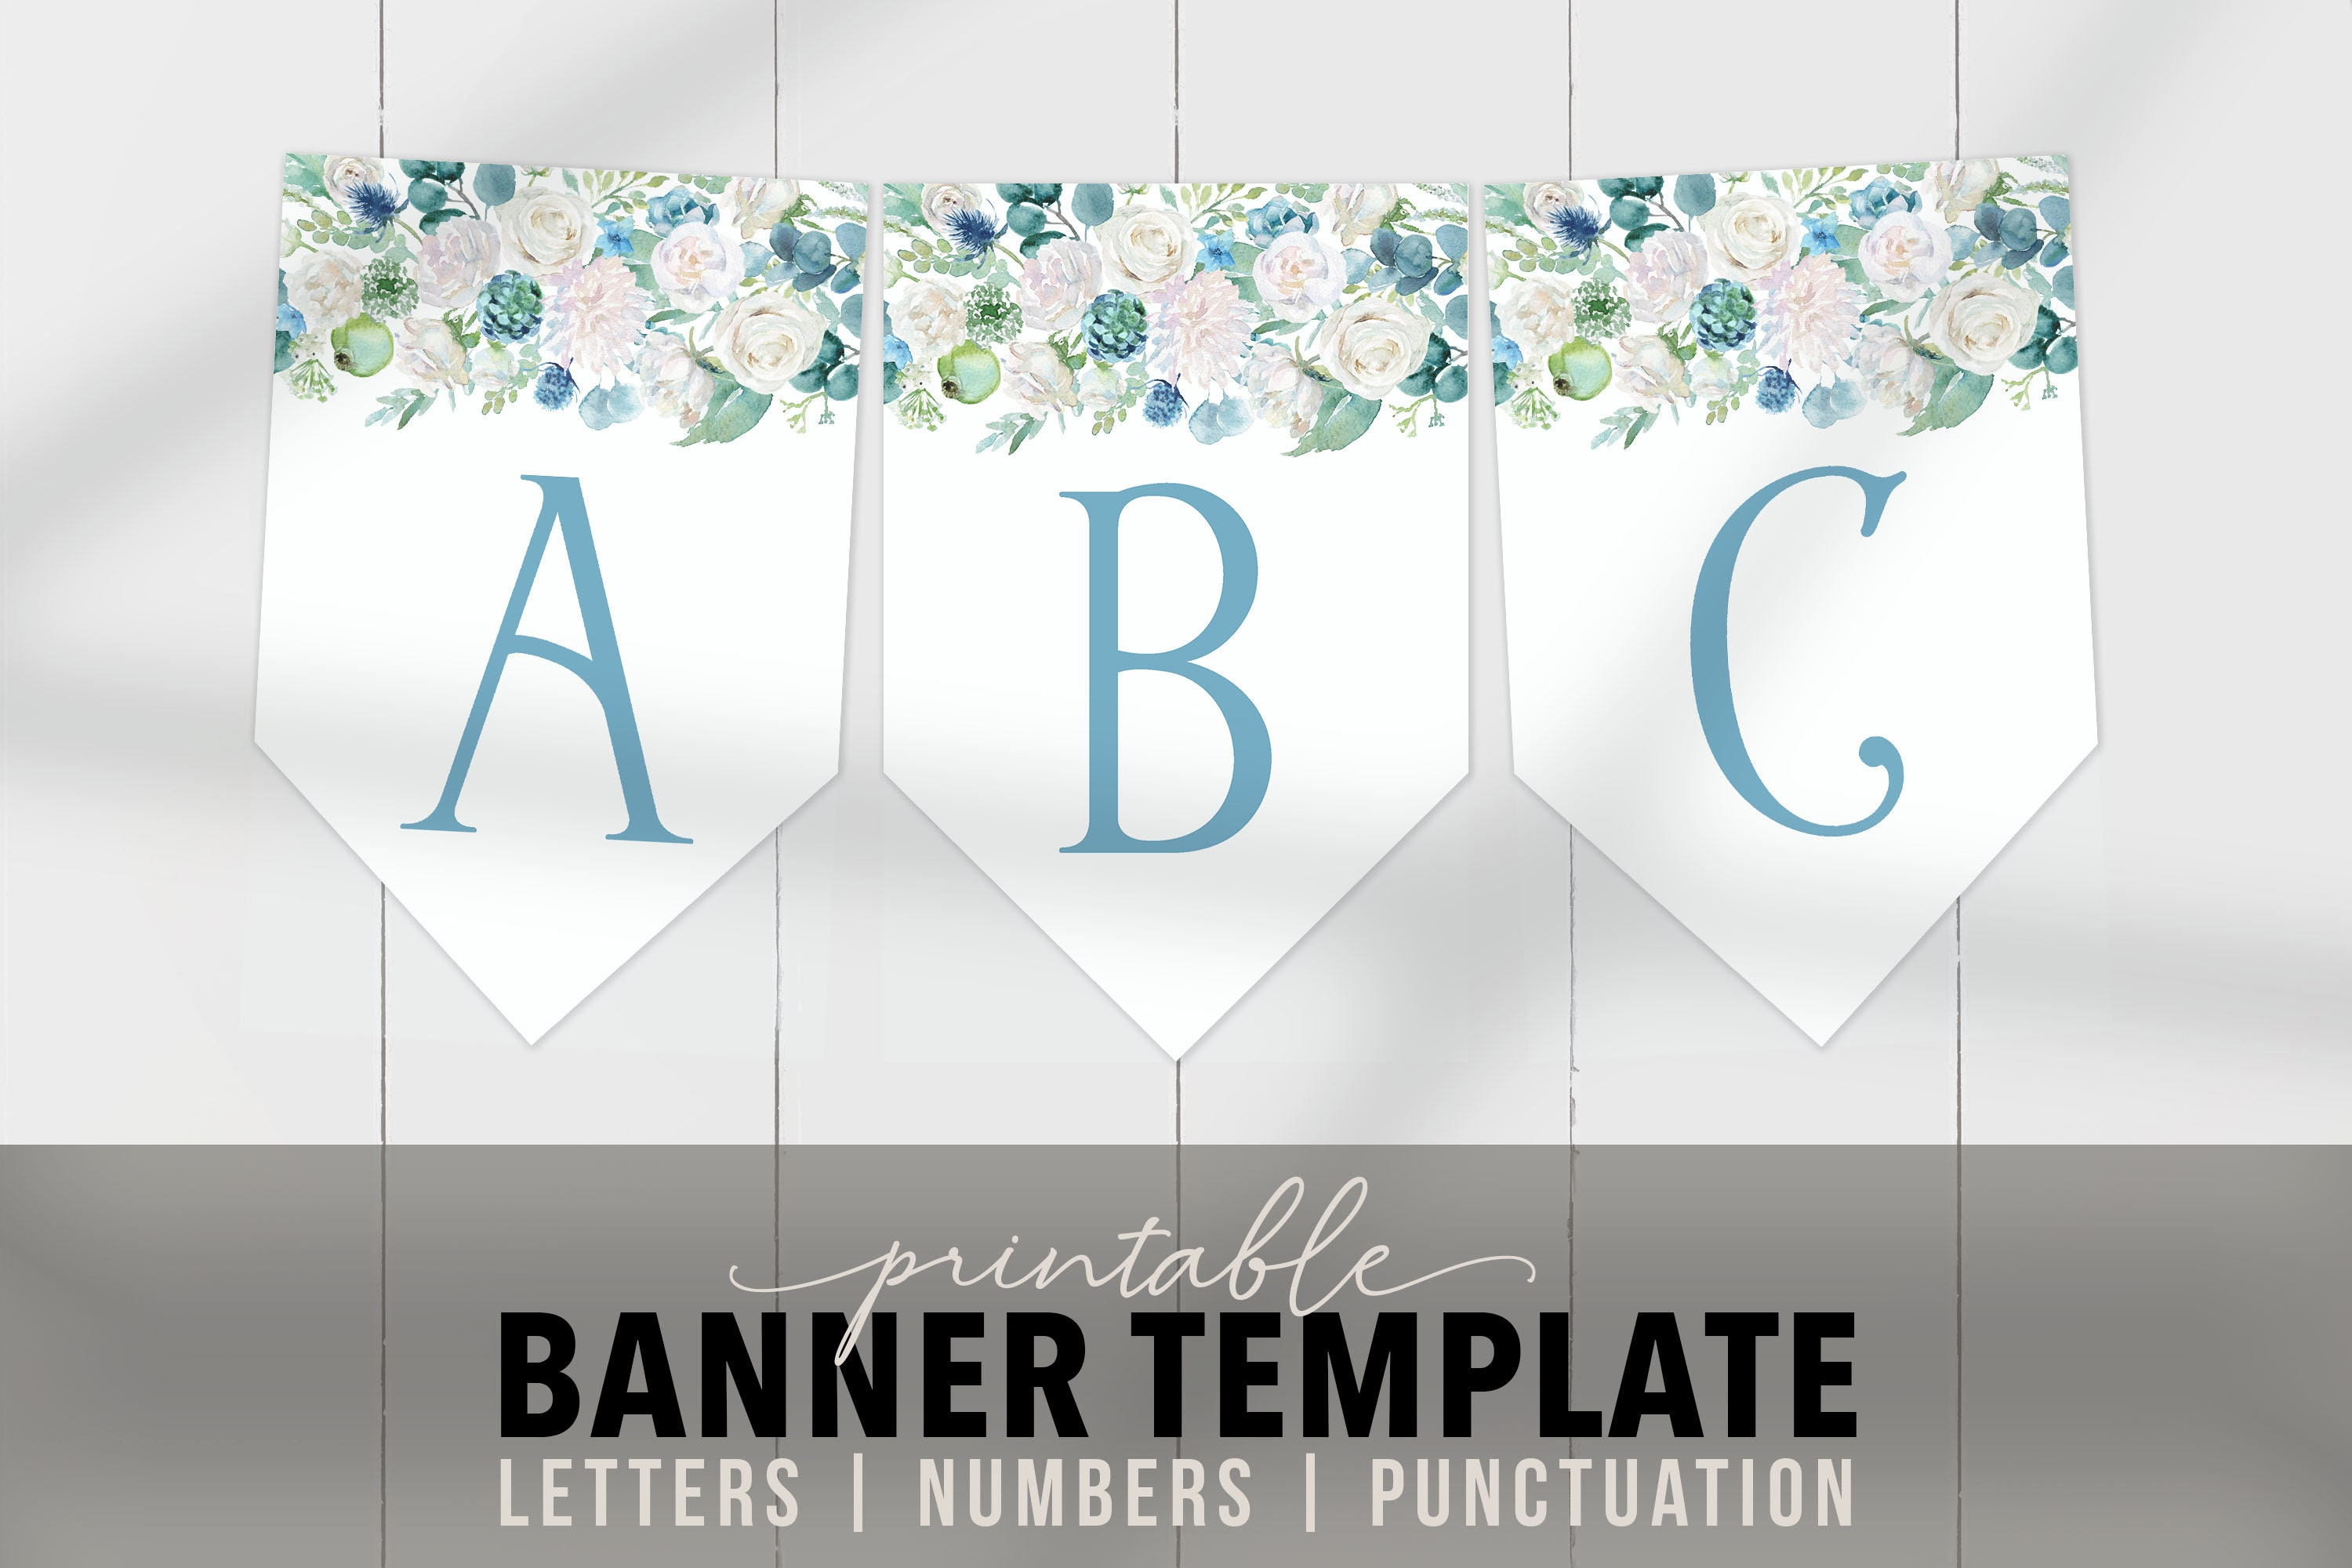 Baby Banners Template from i.etsystatic.com